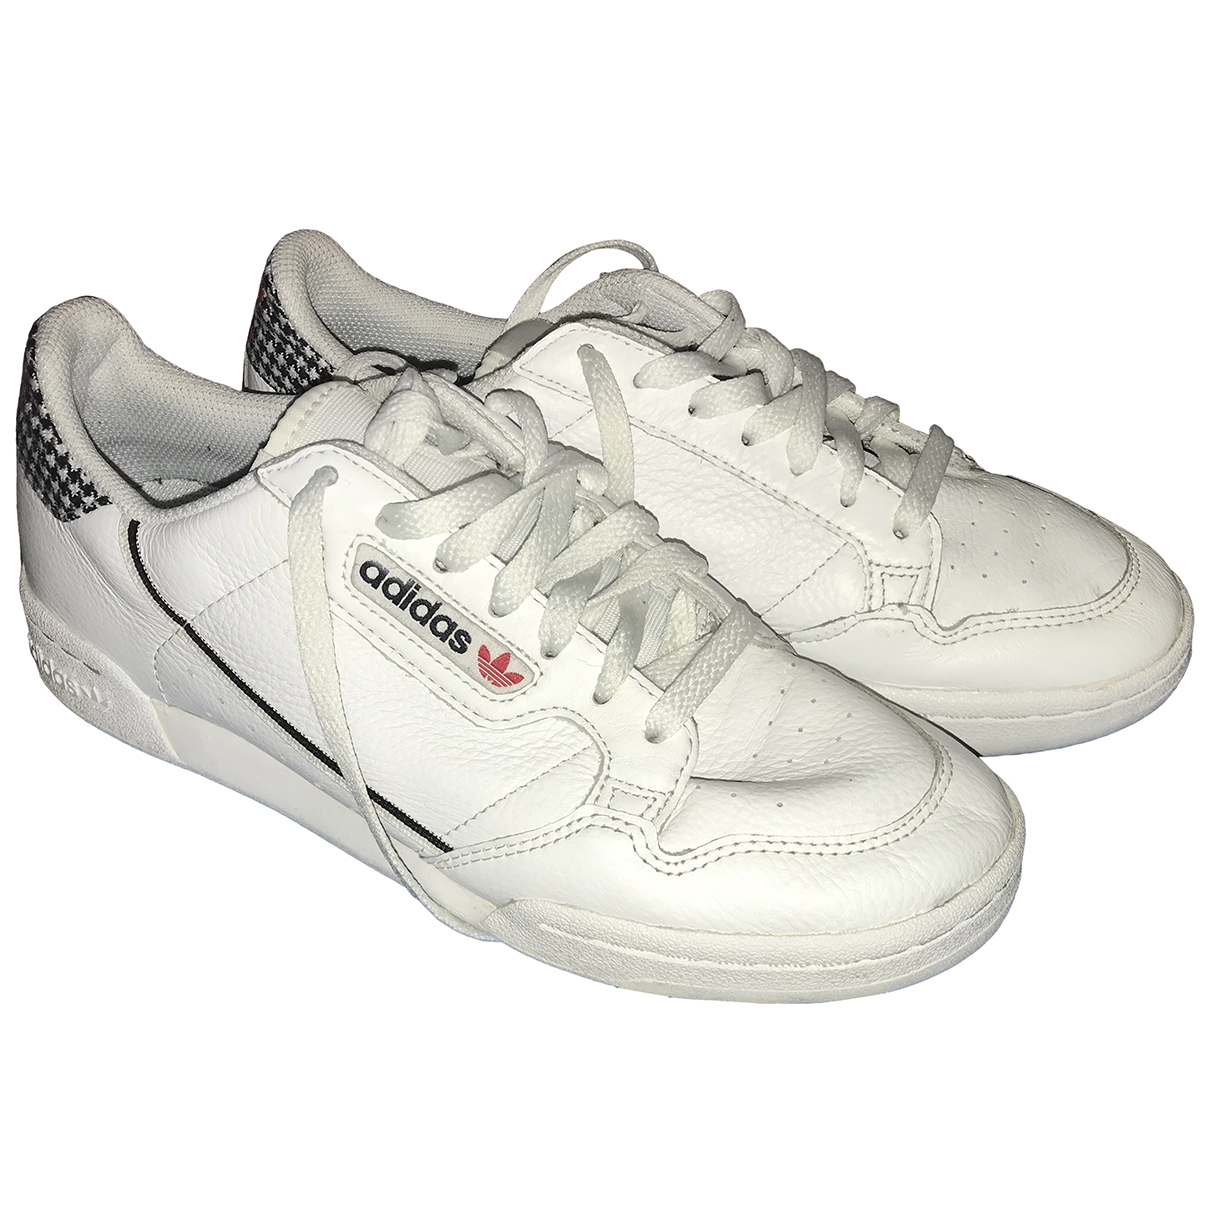 Adidas Continental 80 Sneakers in  Weiss Leder